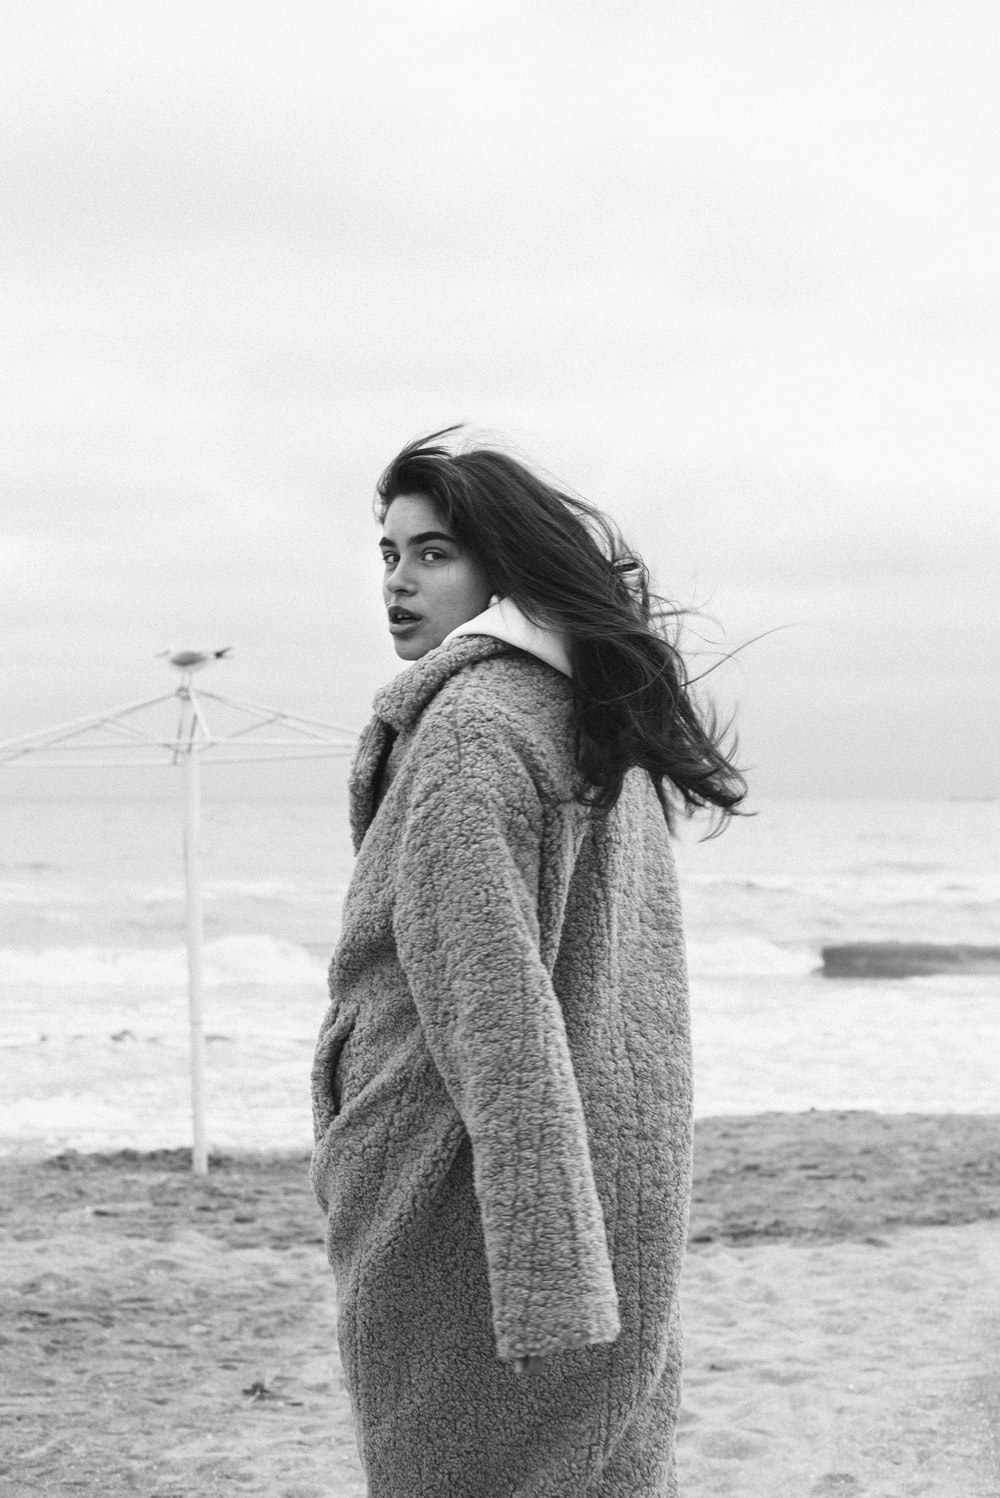 grayscale photo of woman in sweater standing on beach